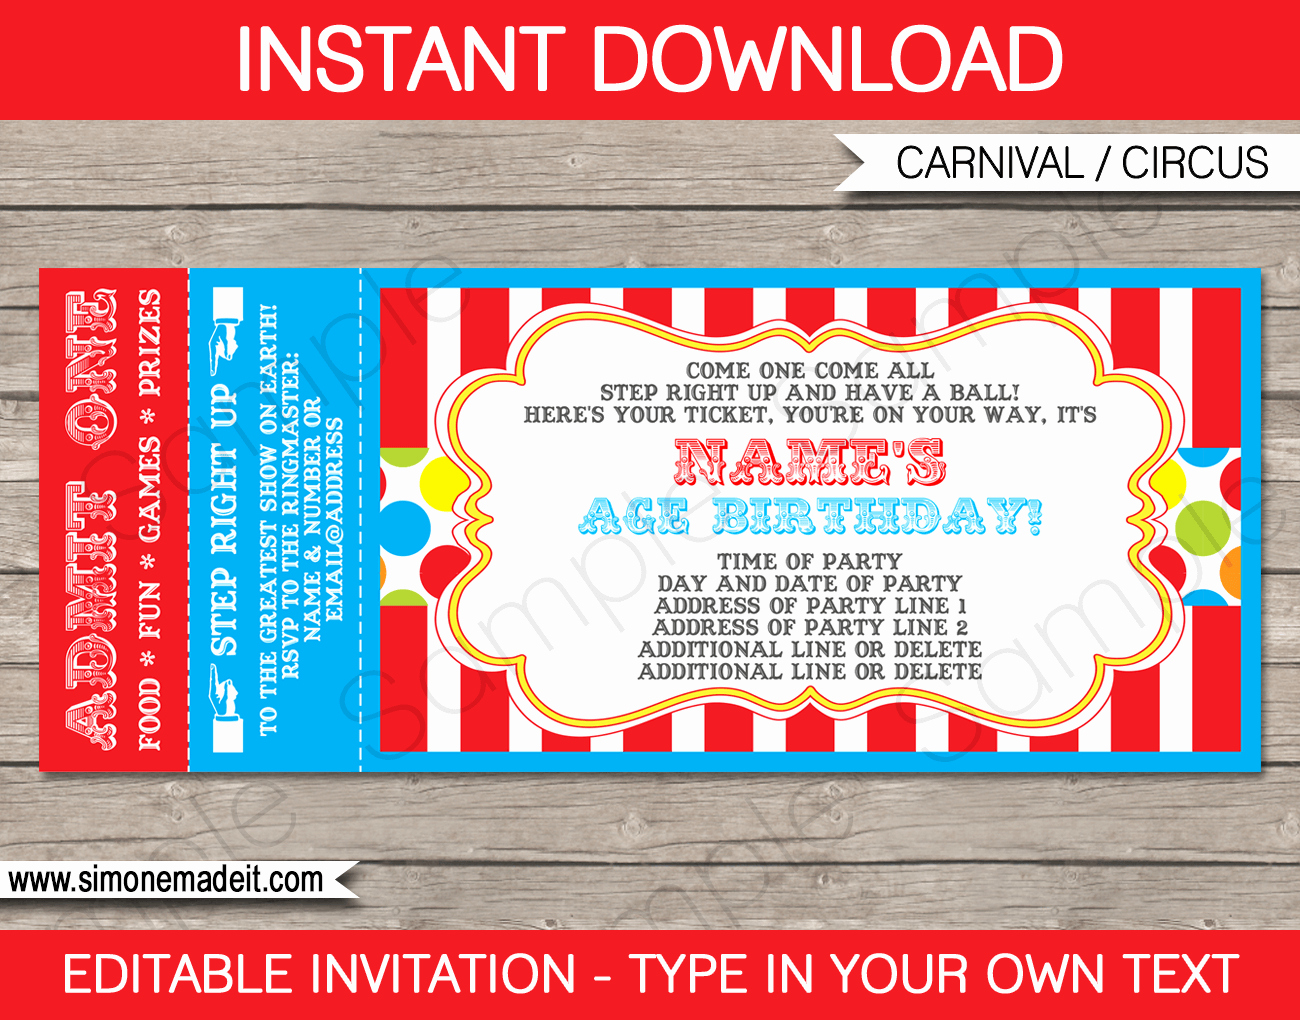 Free Ticket Invitation Template New Carnival Ticket Invitation Template